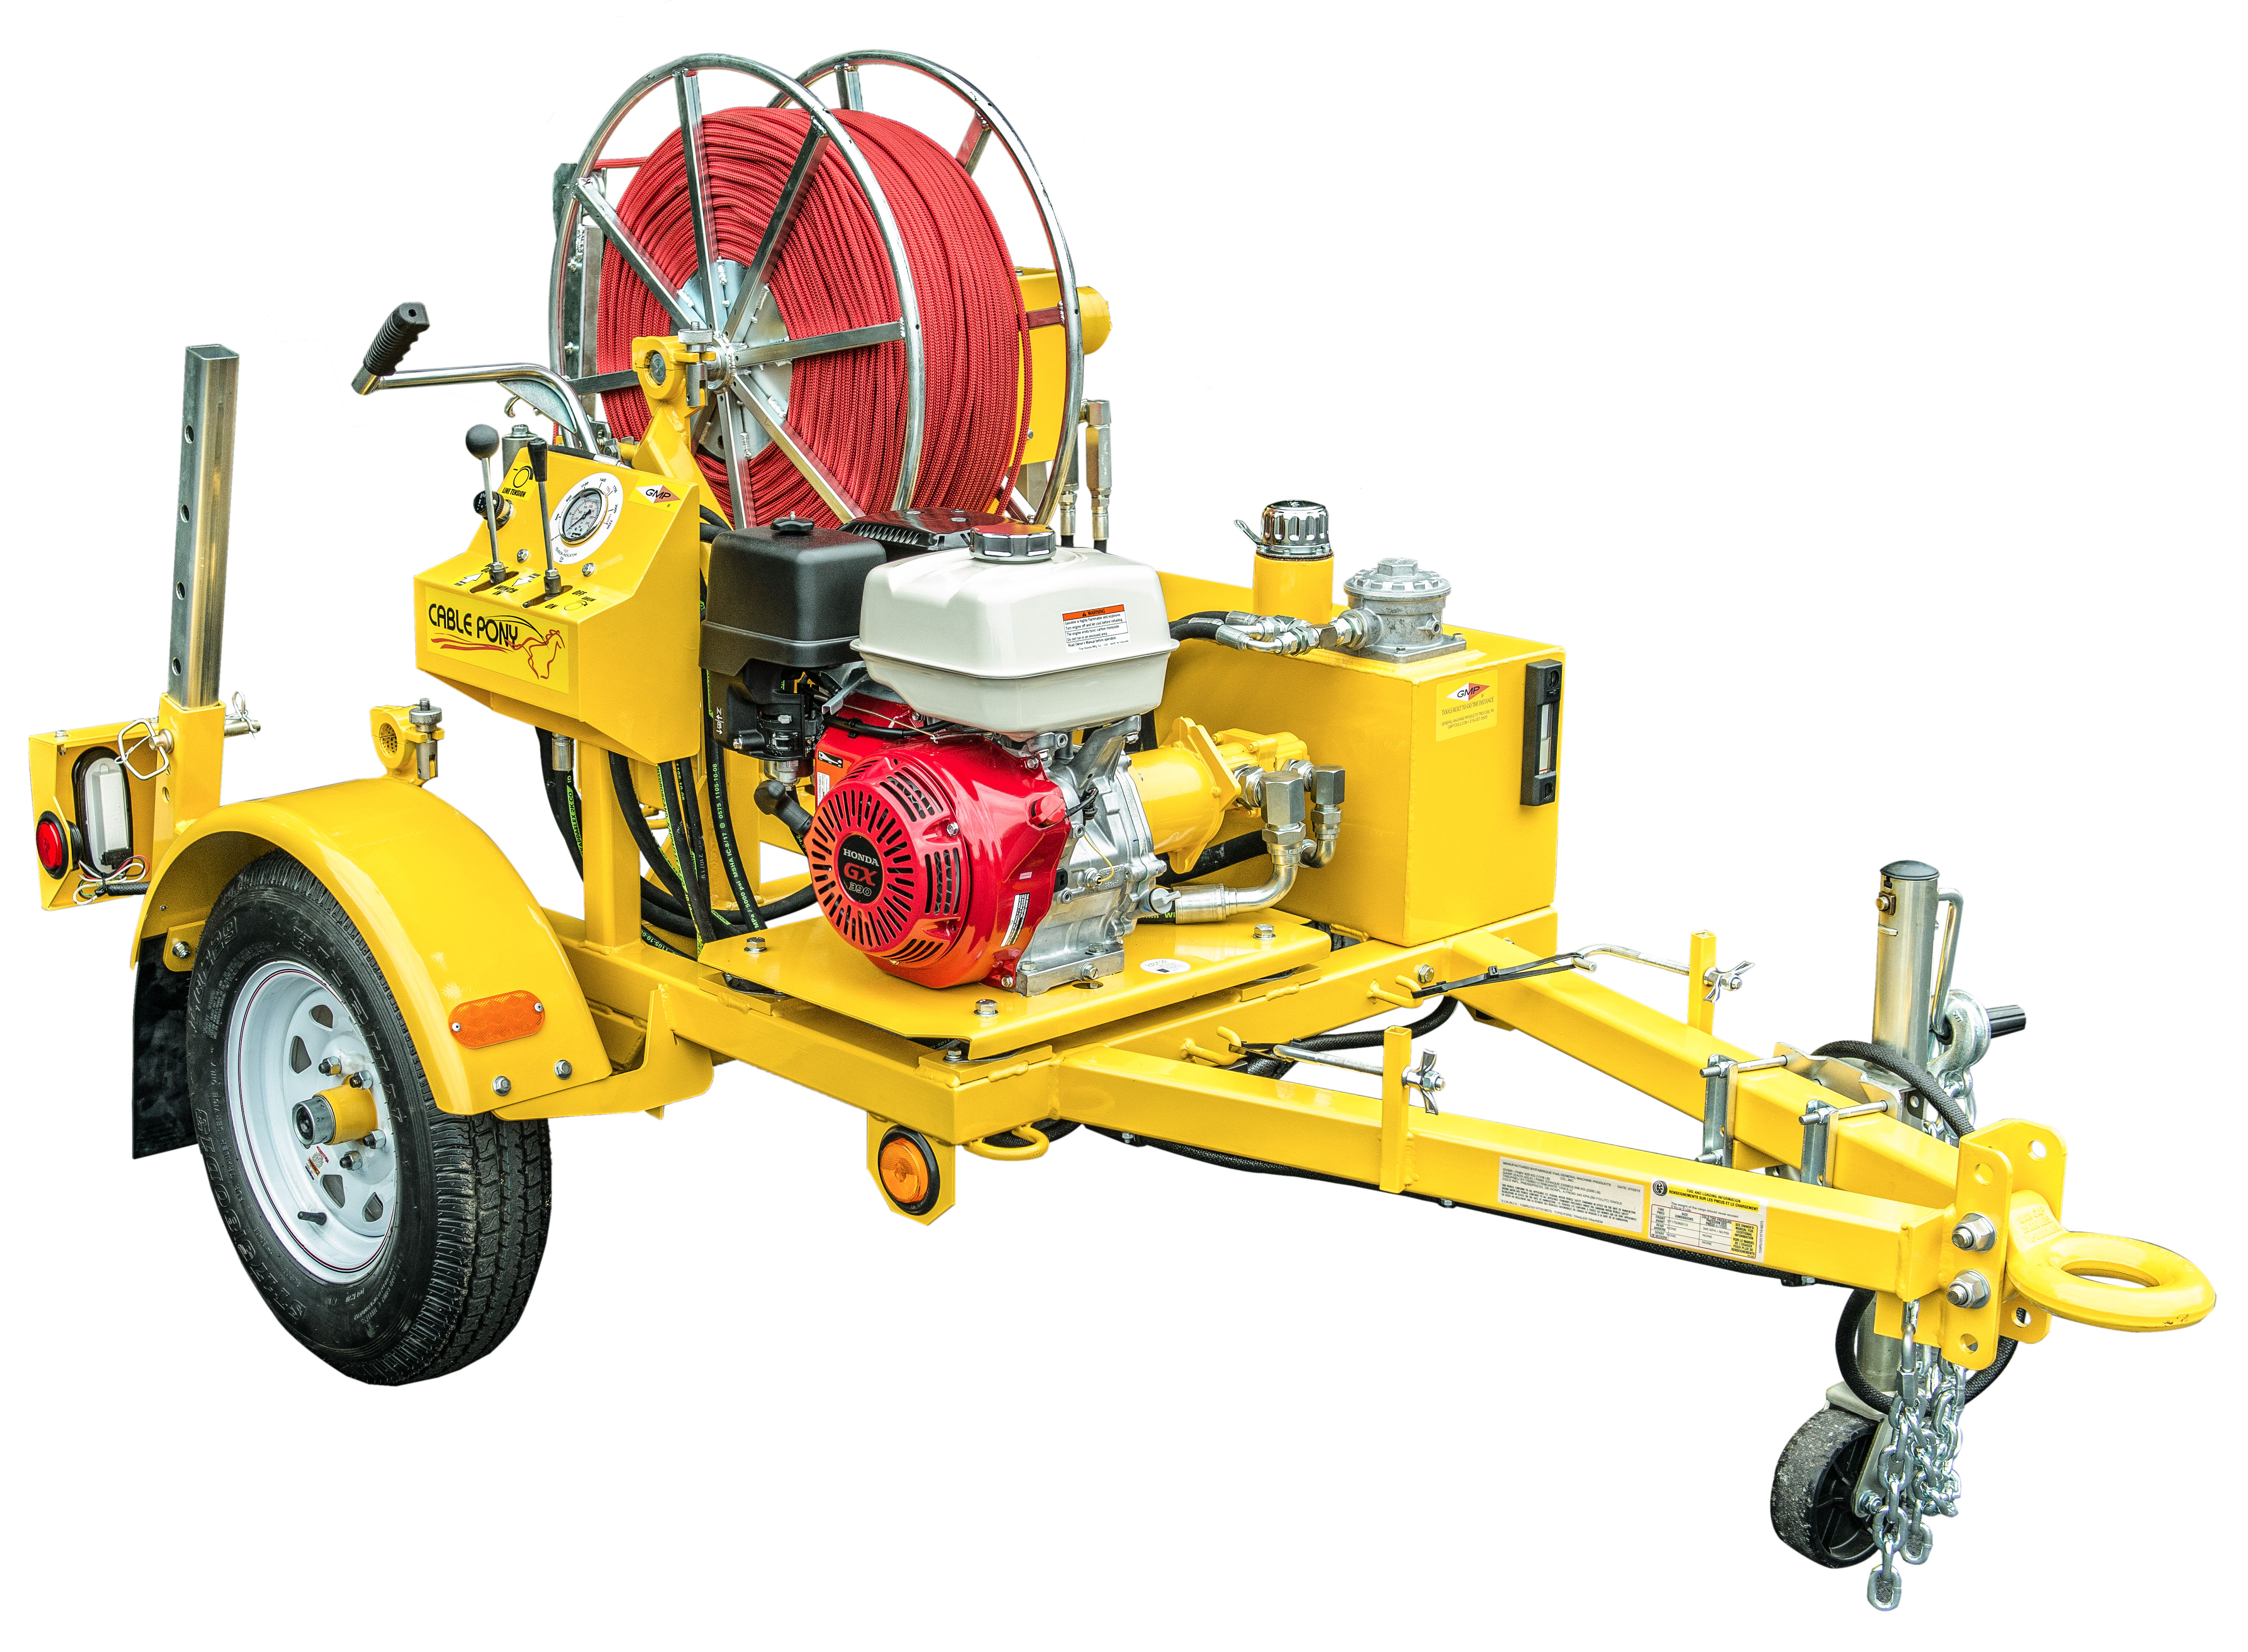 Cable Pony Hydraulic Adss Winch General Machine Products